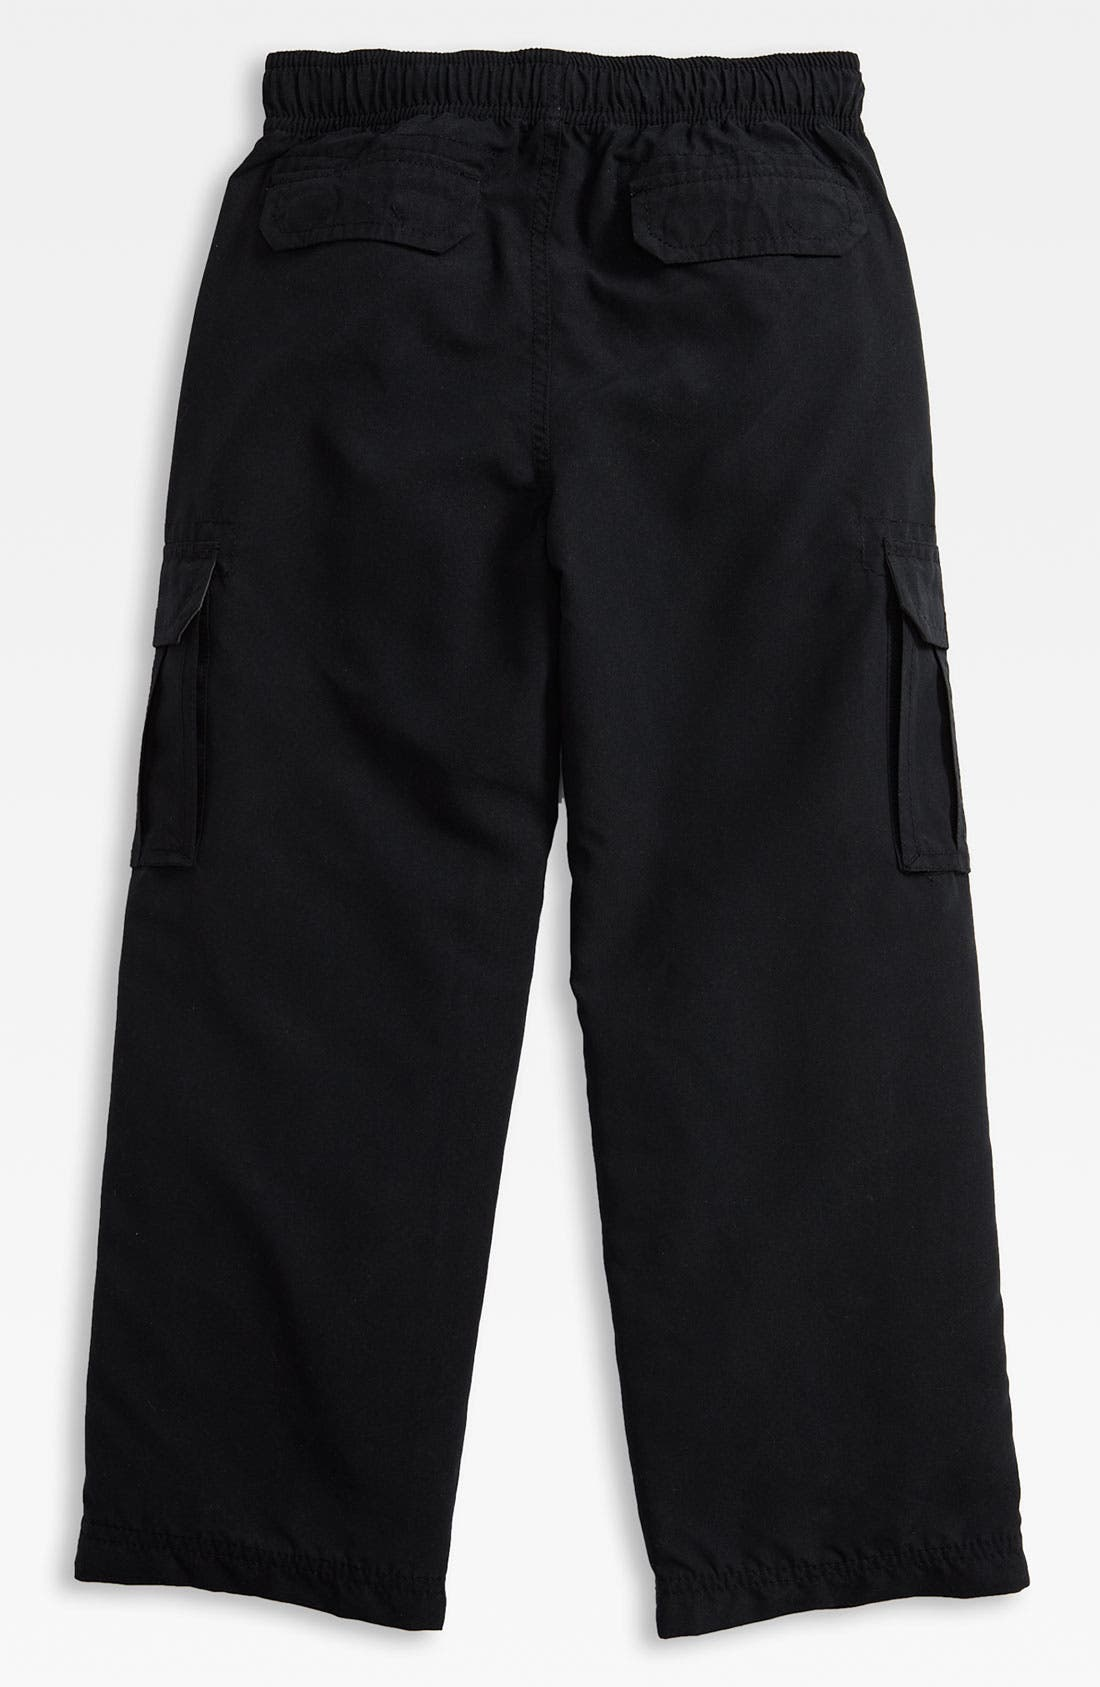 Alternate Image 1 Selected - Pure Stuff 'Summit' Pants (Big Boys)